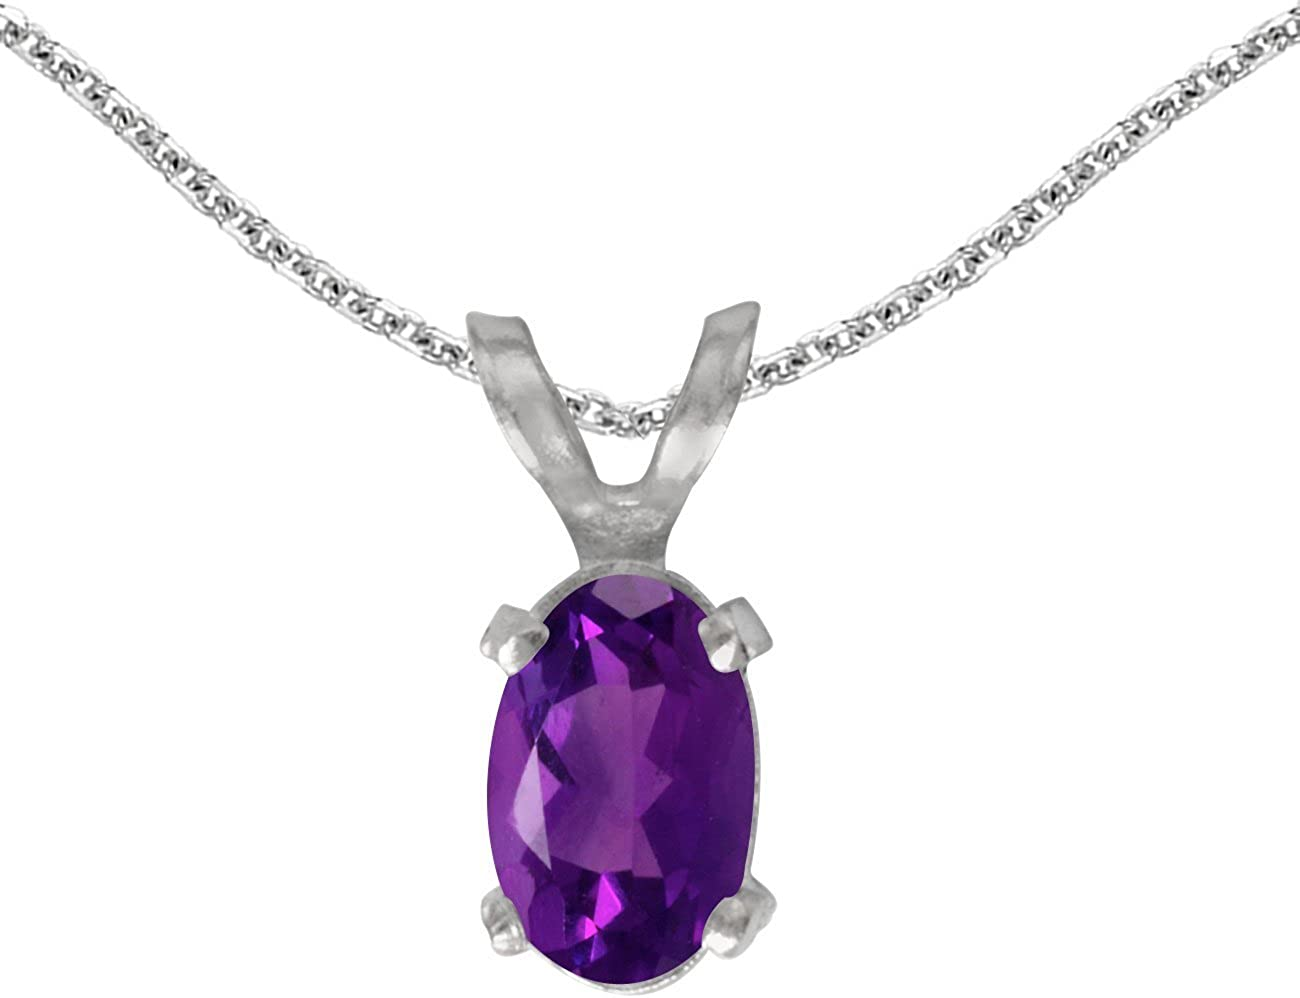 FB Jewels Solid 14k White Gold Genuine Birthstone Oval Gemstone Pendant (0.47 Cttw.)